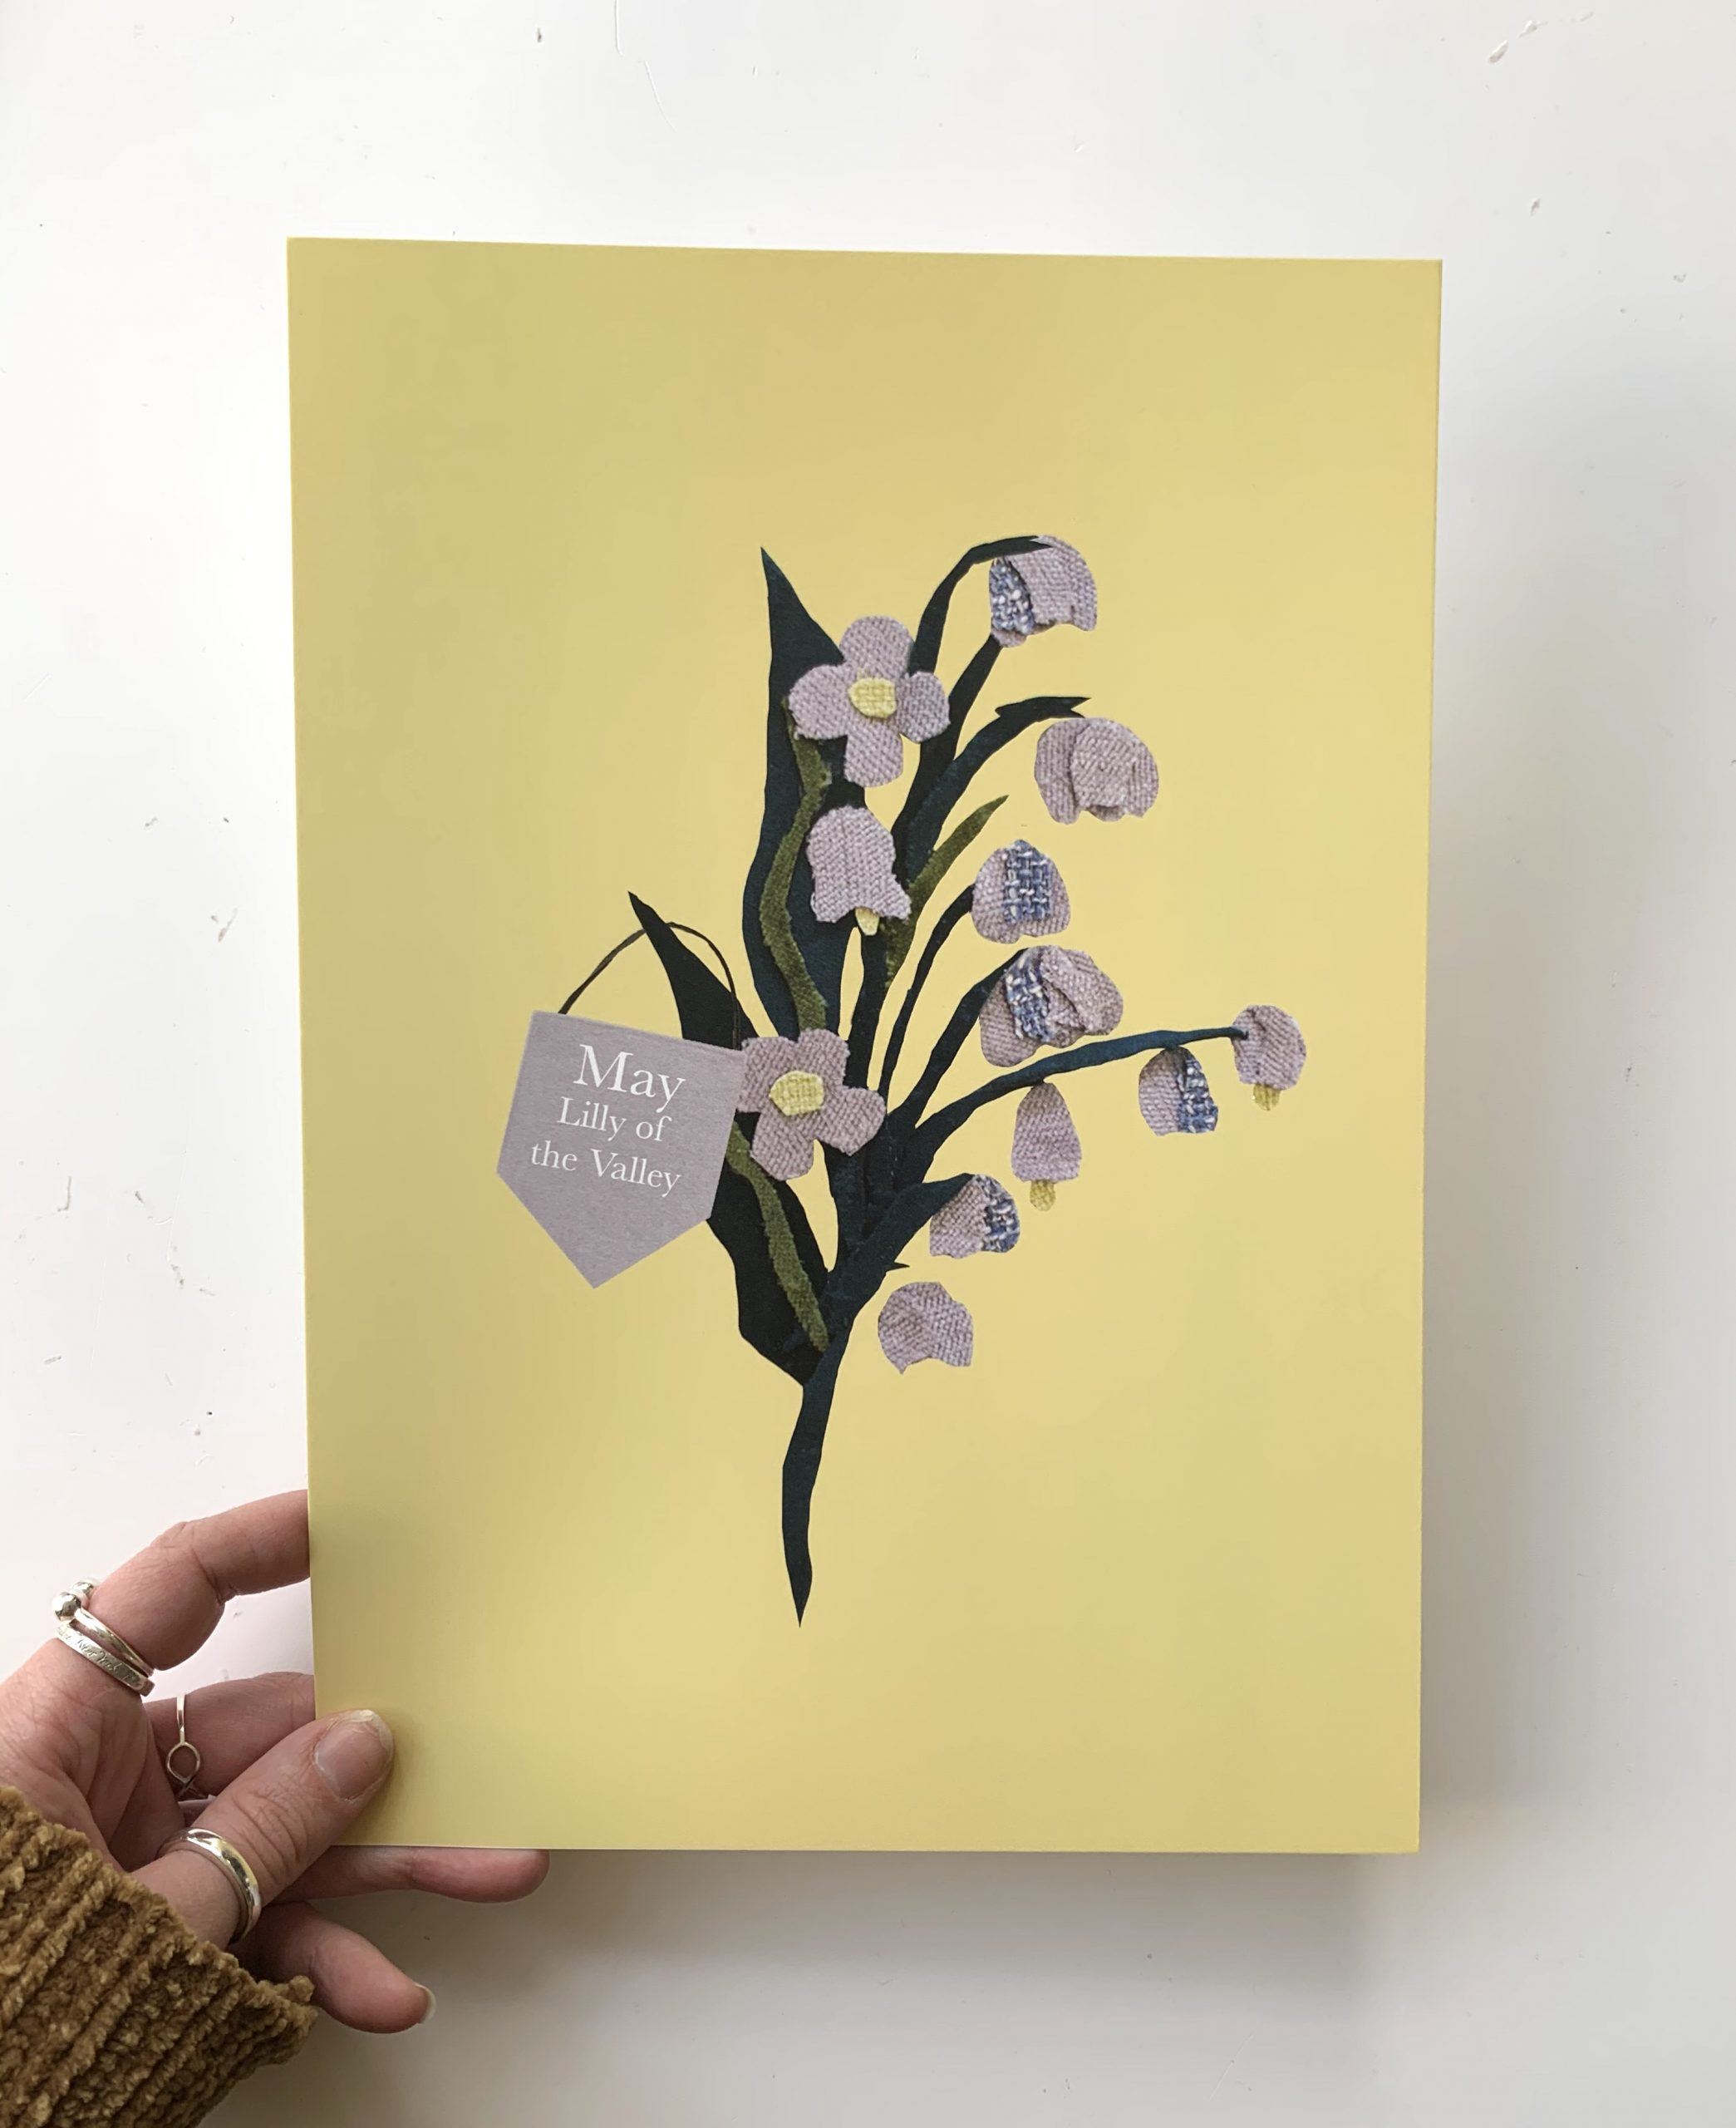 Floral birth month flower print for May- Lily of the Valley